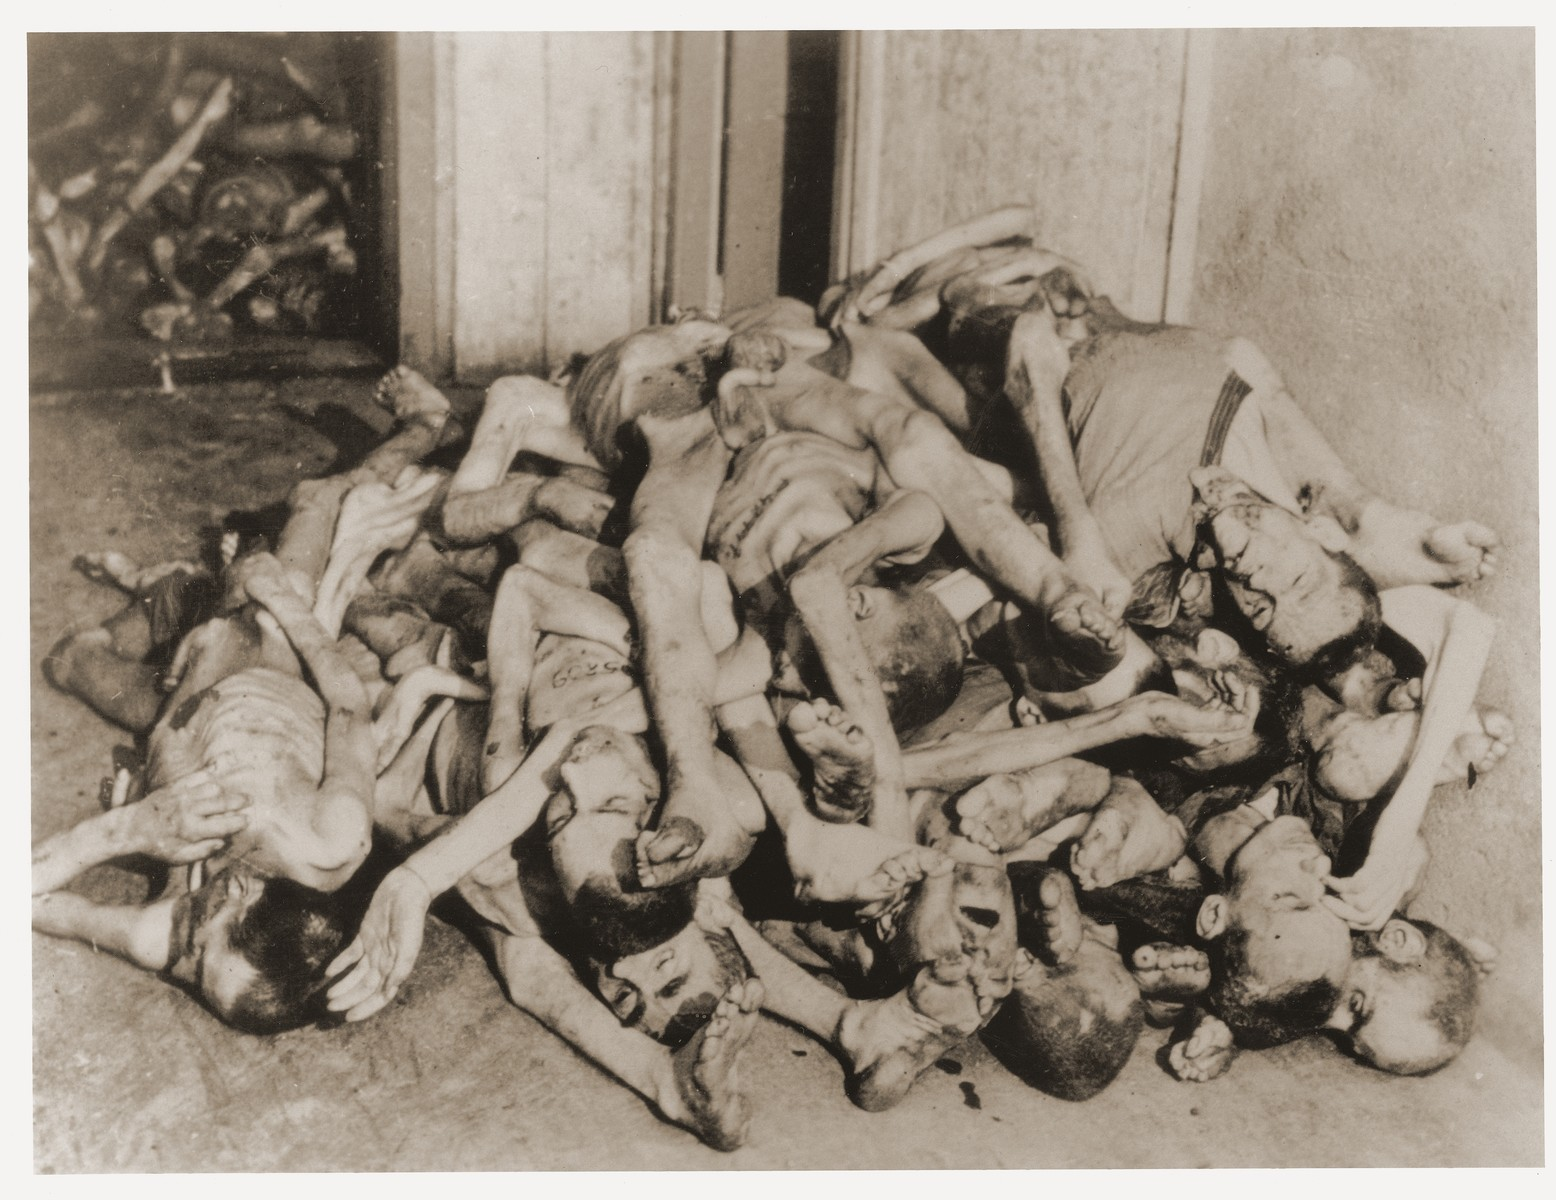 A pile of corpses lies in the morgue of the crematorium in the newly liberated Dachau concentration camp.